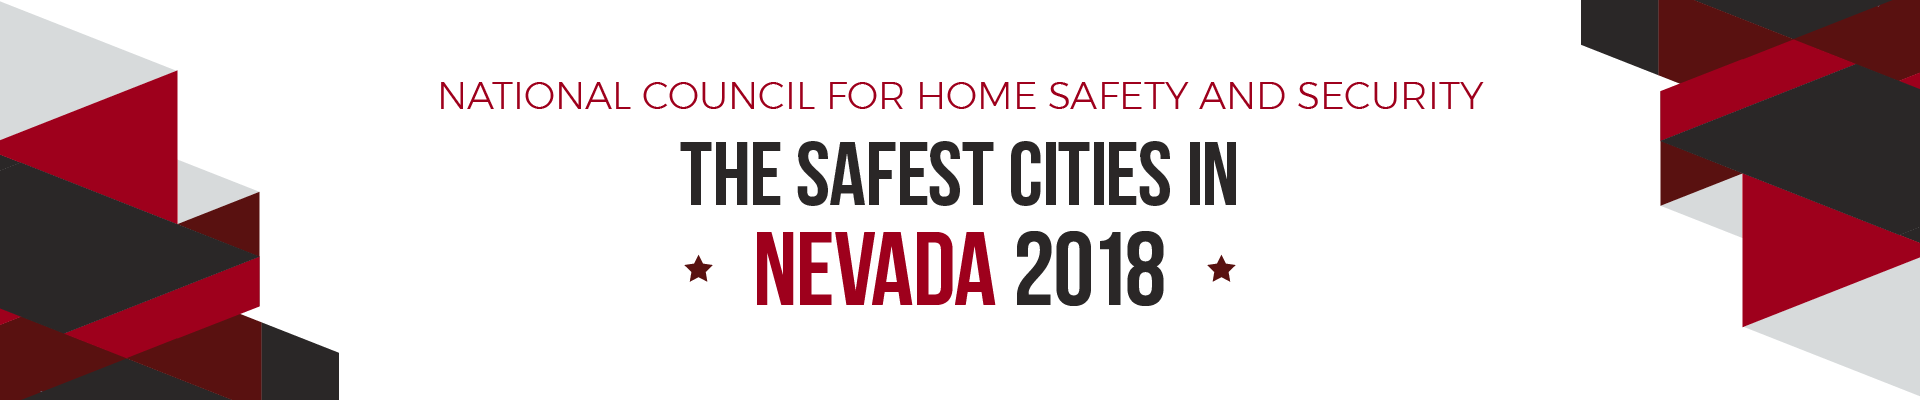 safe cities nevada 2018